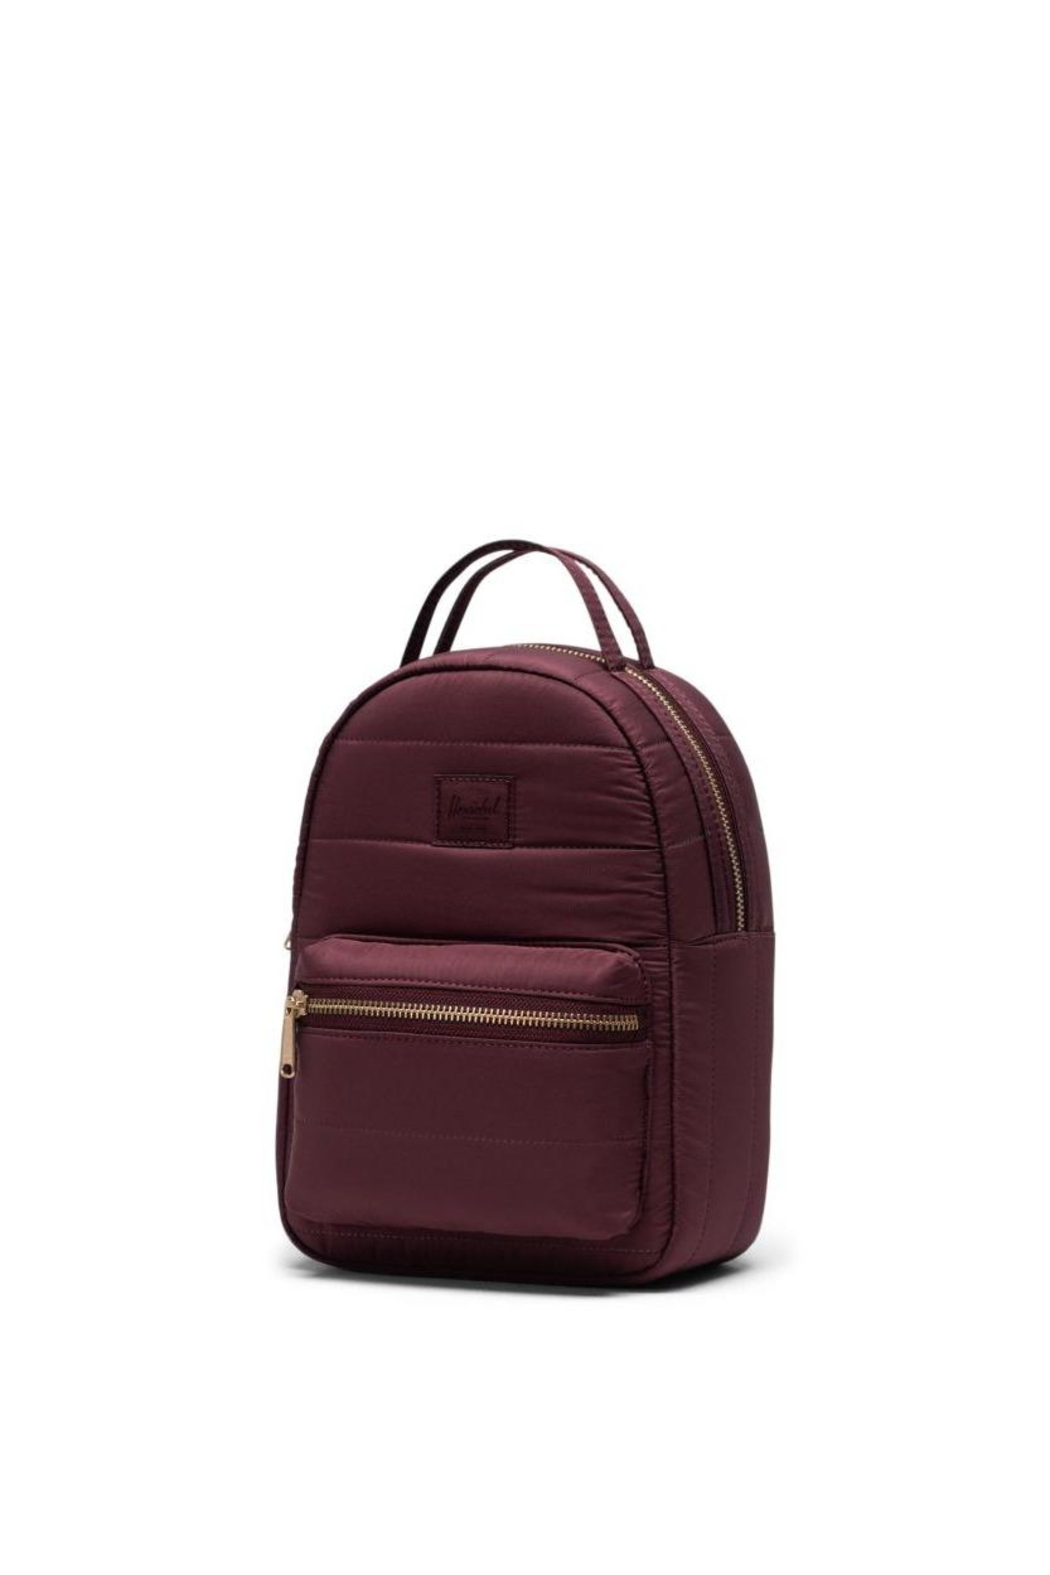 Herschel Supply Co. Plum Quilted Backpack - Side Cropped Image